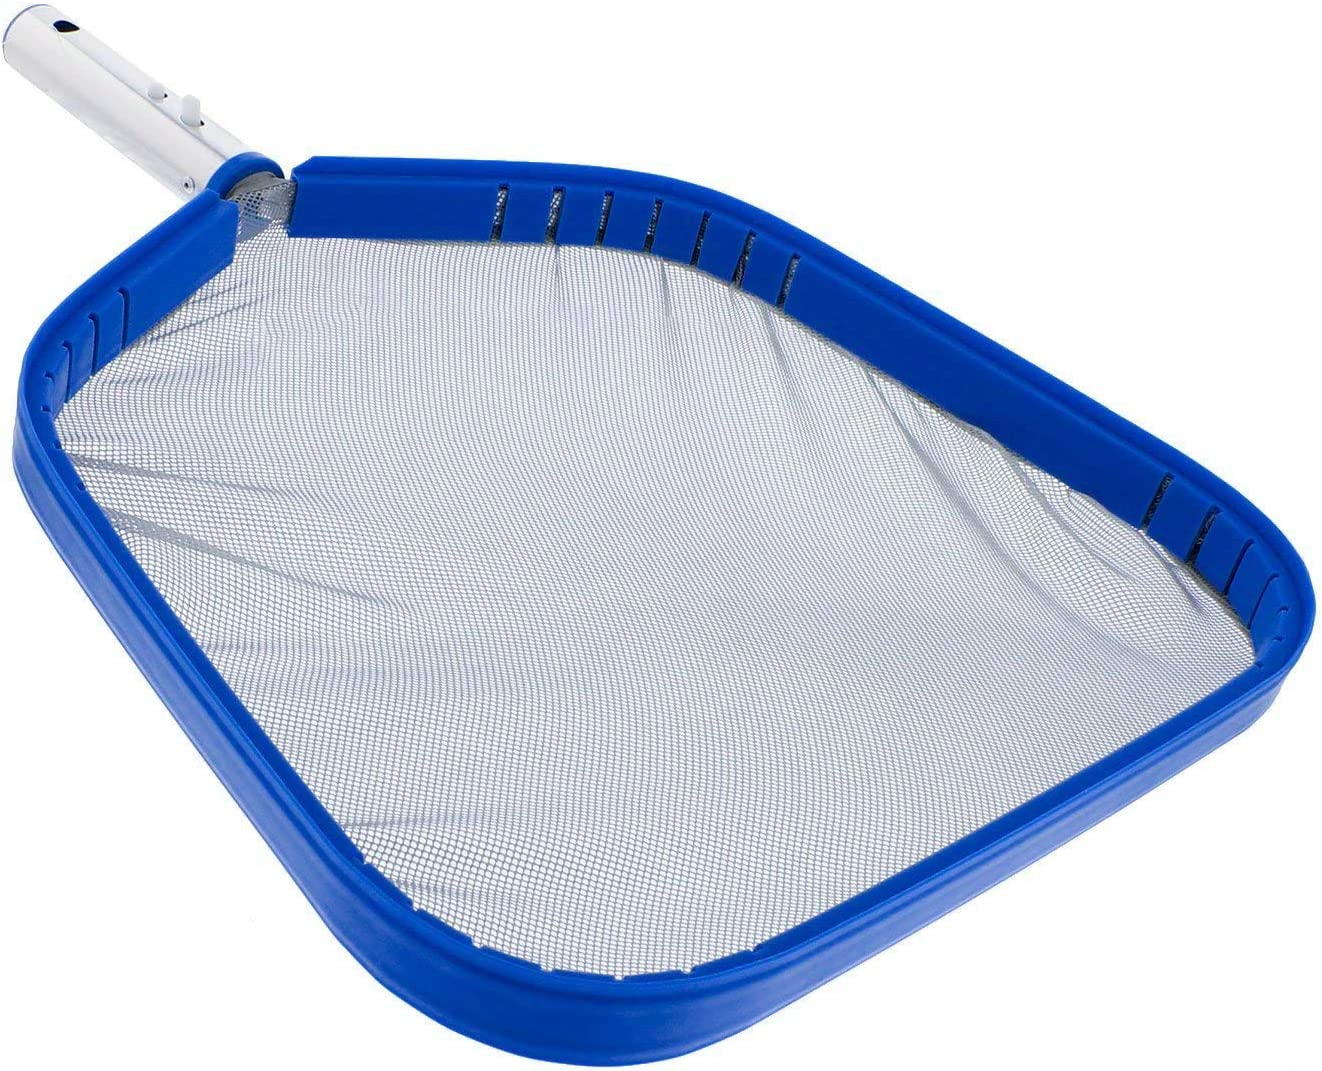 """POOLWHALE Professional Heavy Duty 15"""" Swimming Pool Leaf Skimmer Net with Strong Reinforced Aluminum Frame Handle - Commercial Grade - Fast Cleaning, Easy Debris Pickup & Removal"""